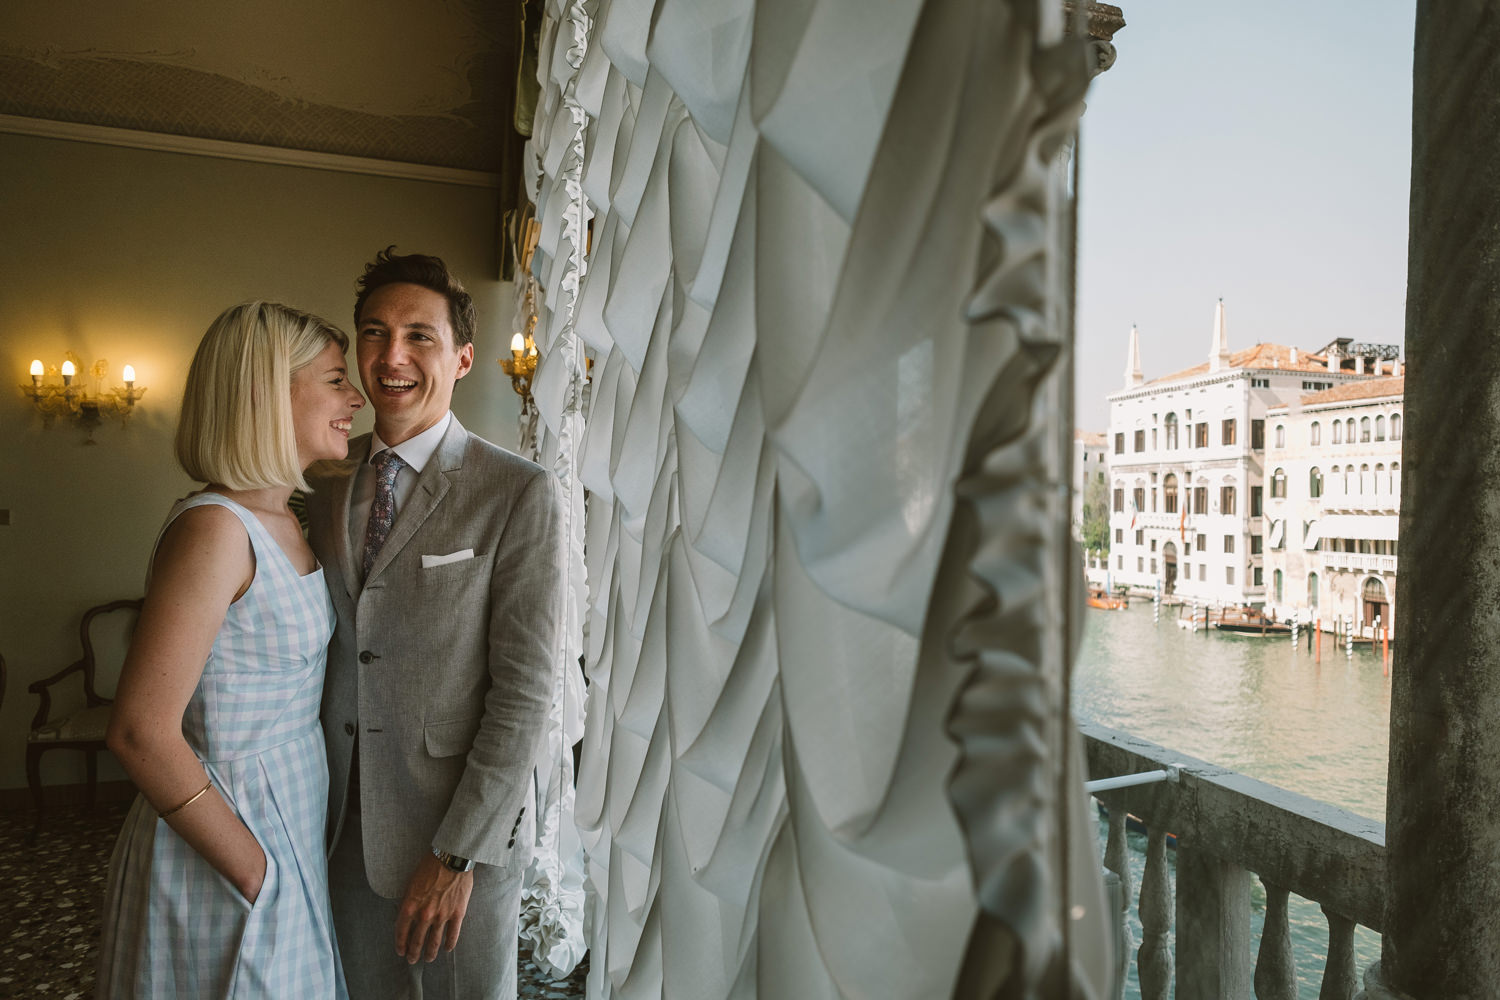 bride and groom checking out the ceremony room at palazzo cavall